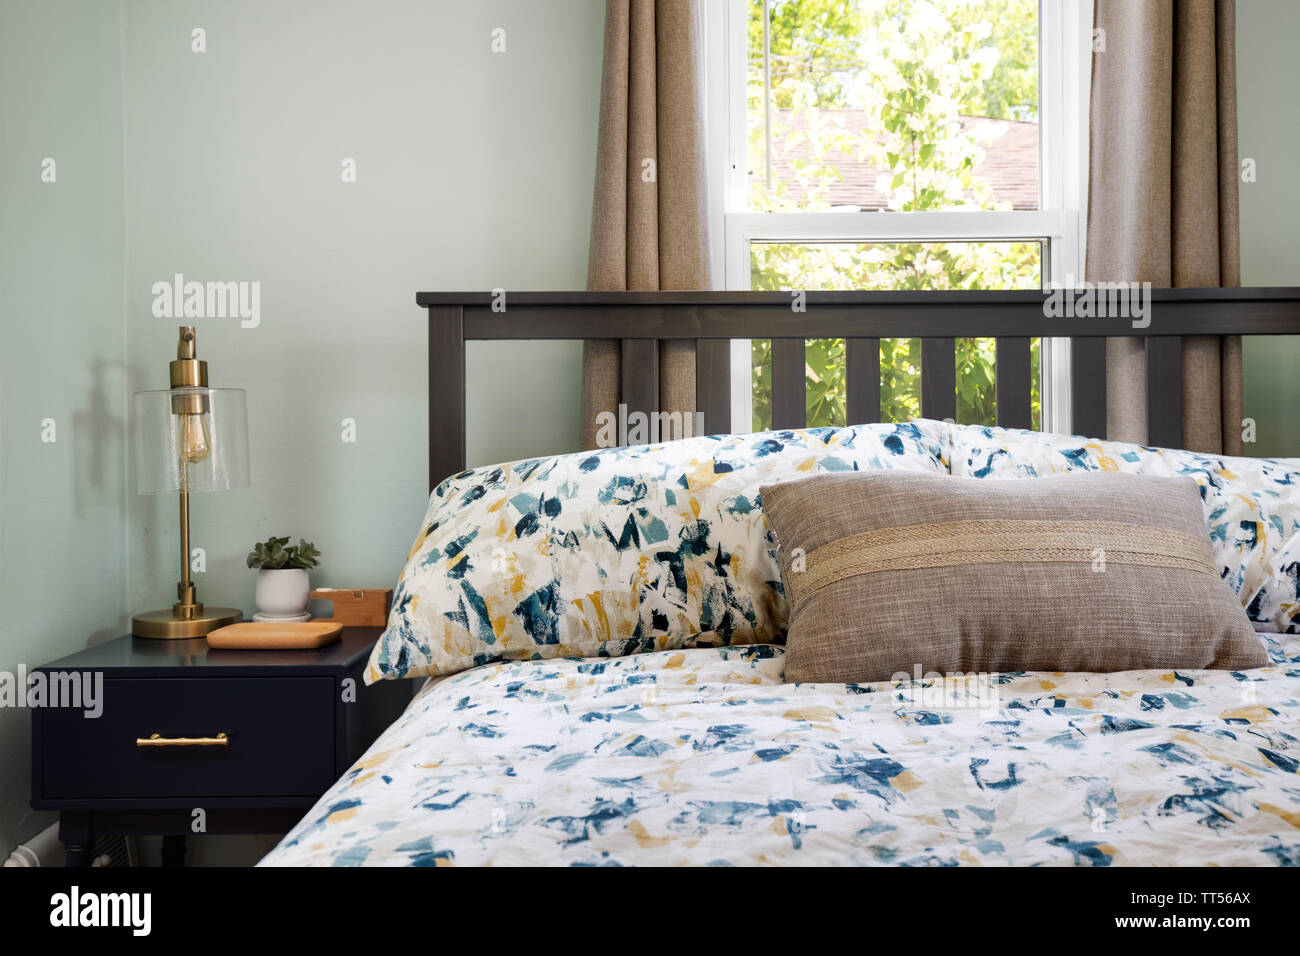 A Comfortable Room With A Bed In Front Of A Window On A Sunny Day And A Nightstand With Some Objects On It Stock Photo Alamy